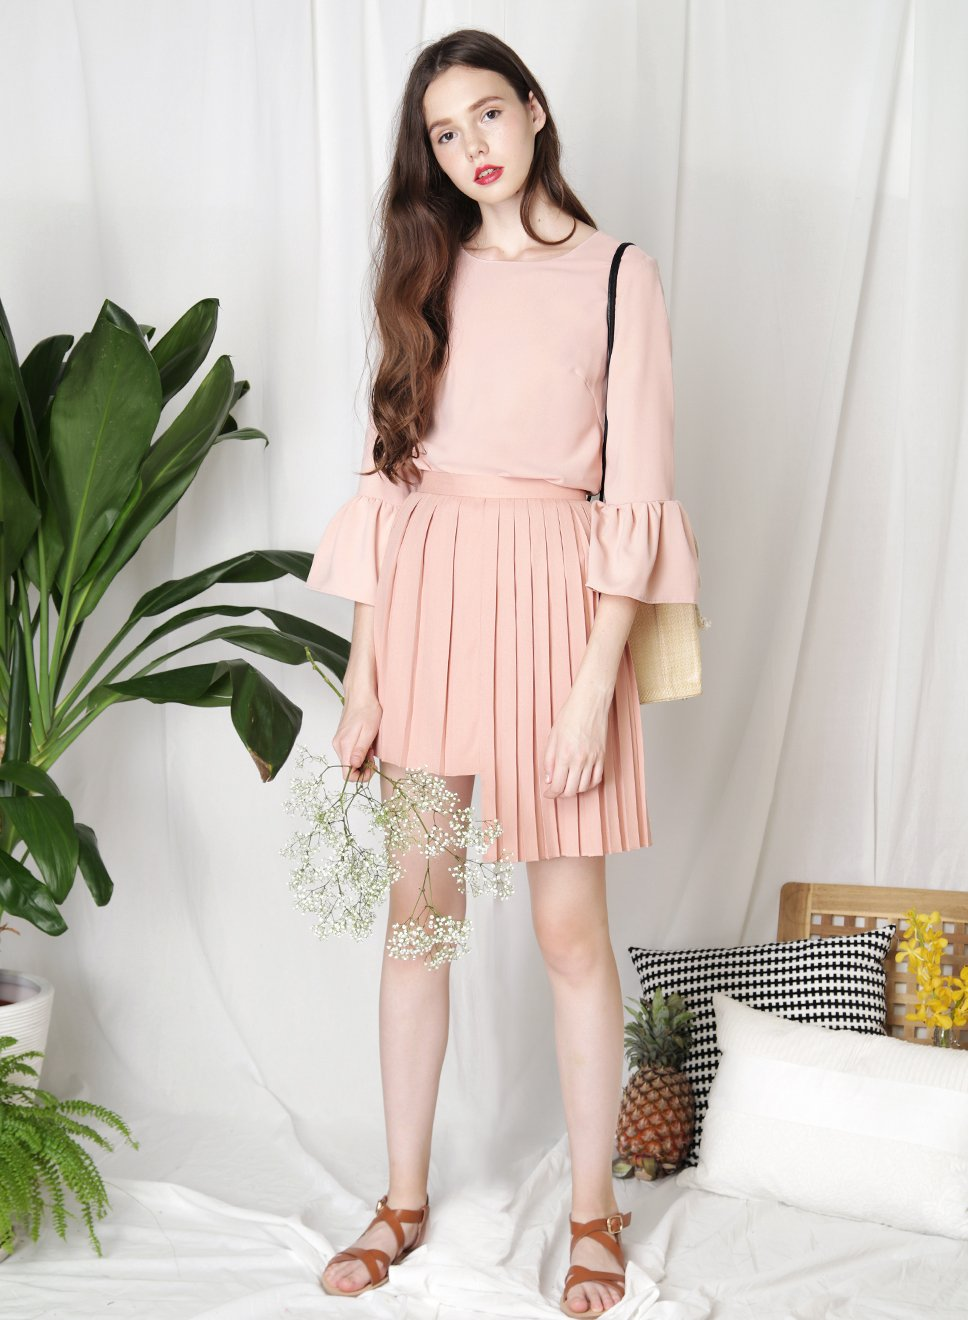 CRUSADE Uneven Hem Pleated Skirt (Peach Rose) at $ 34.50 only sold at And Well Dressed Online Fashion Store Singapore